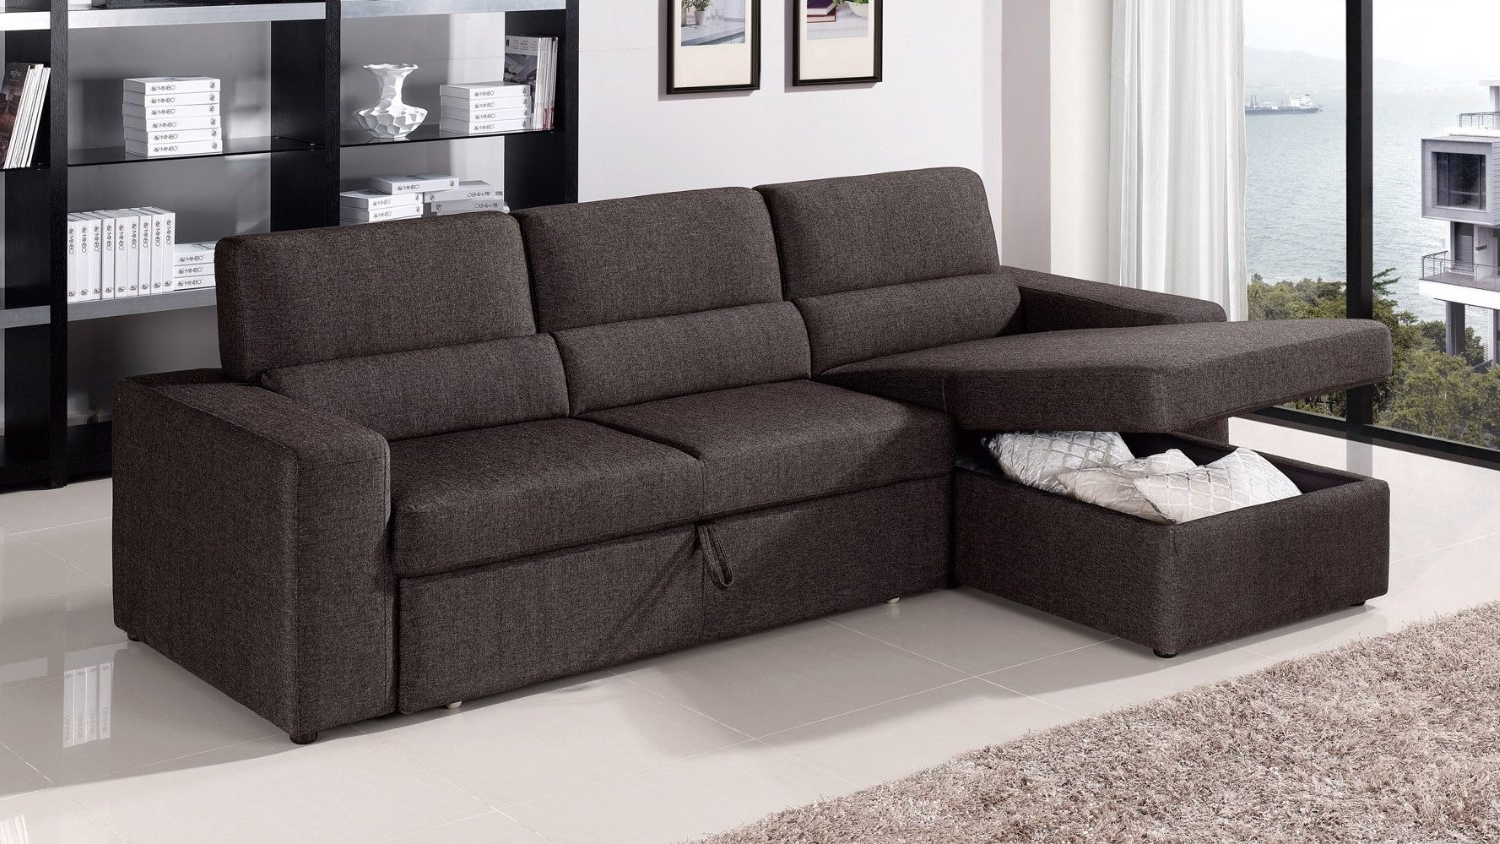 Orion Sectional Modern Leather Chair And Ottoman Fabric Chair And Inside Well Known Sectional Sleeper Sofas With Ottoman (View 11 of 20)